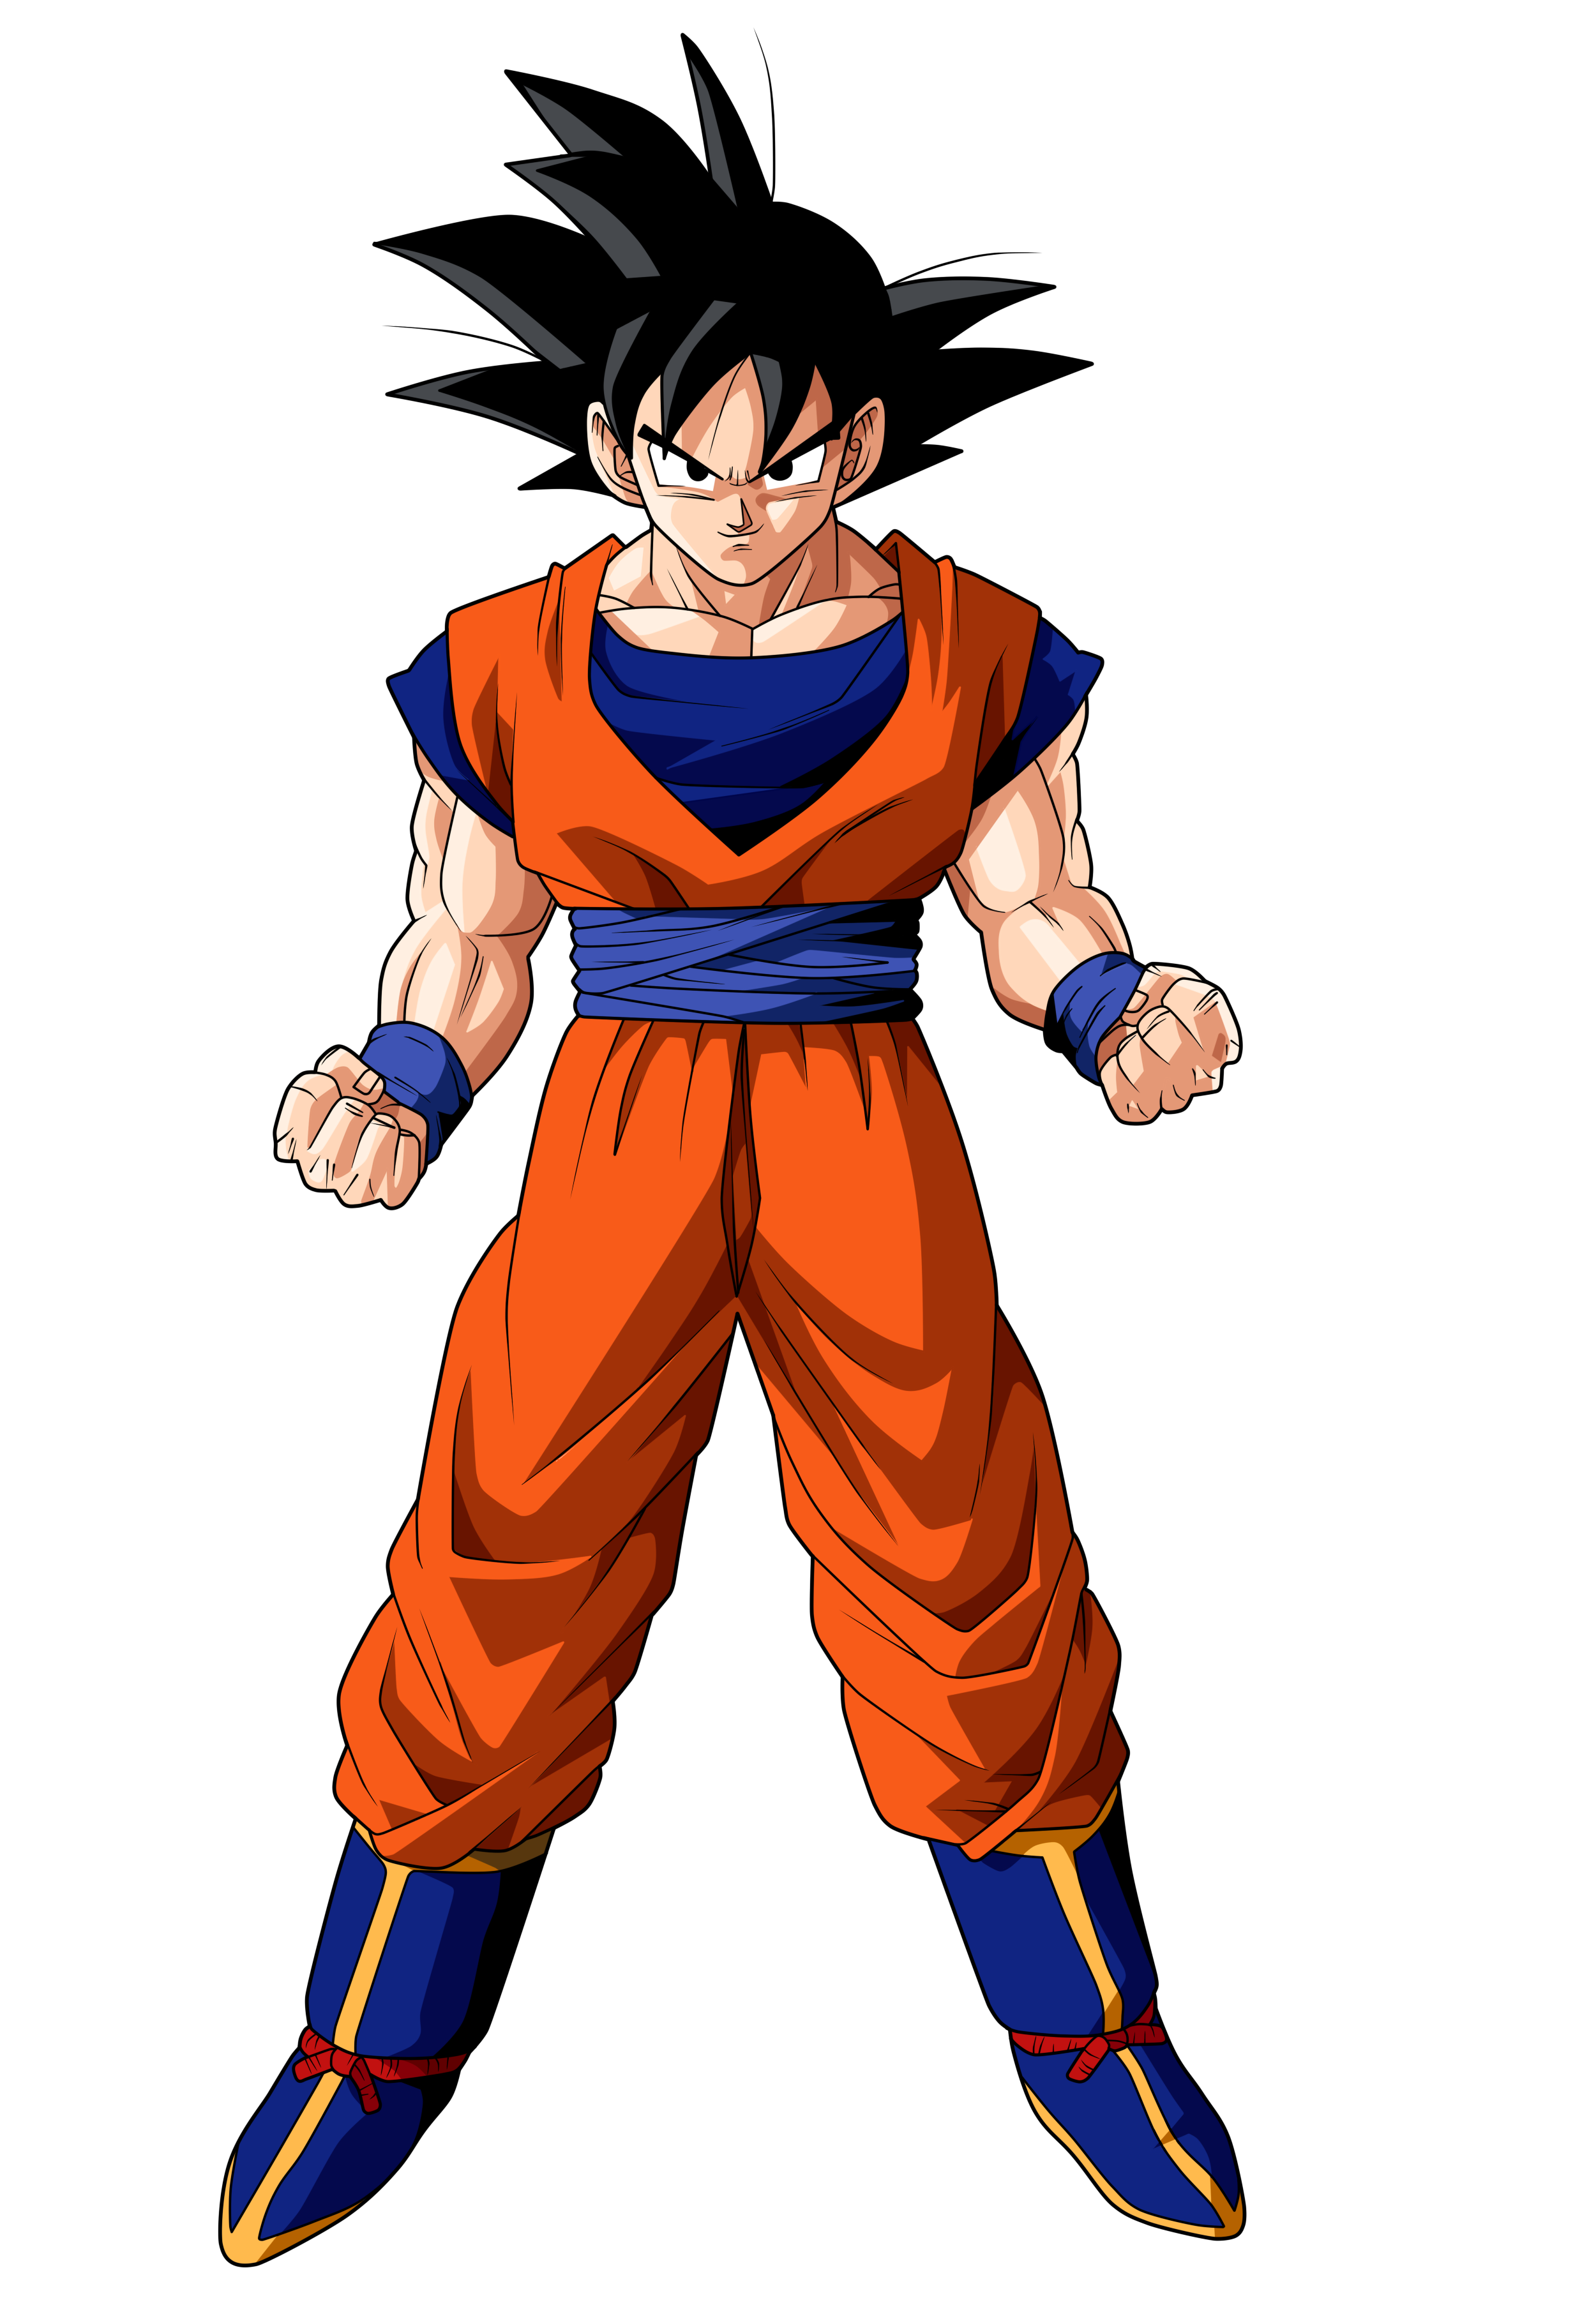 Goku png hd. Images transparent free download